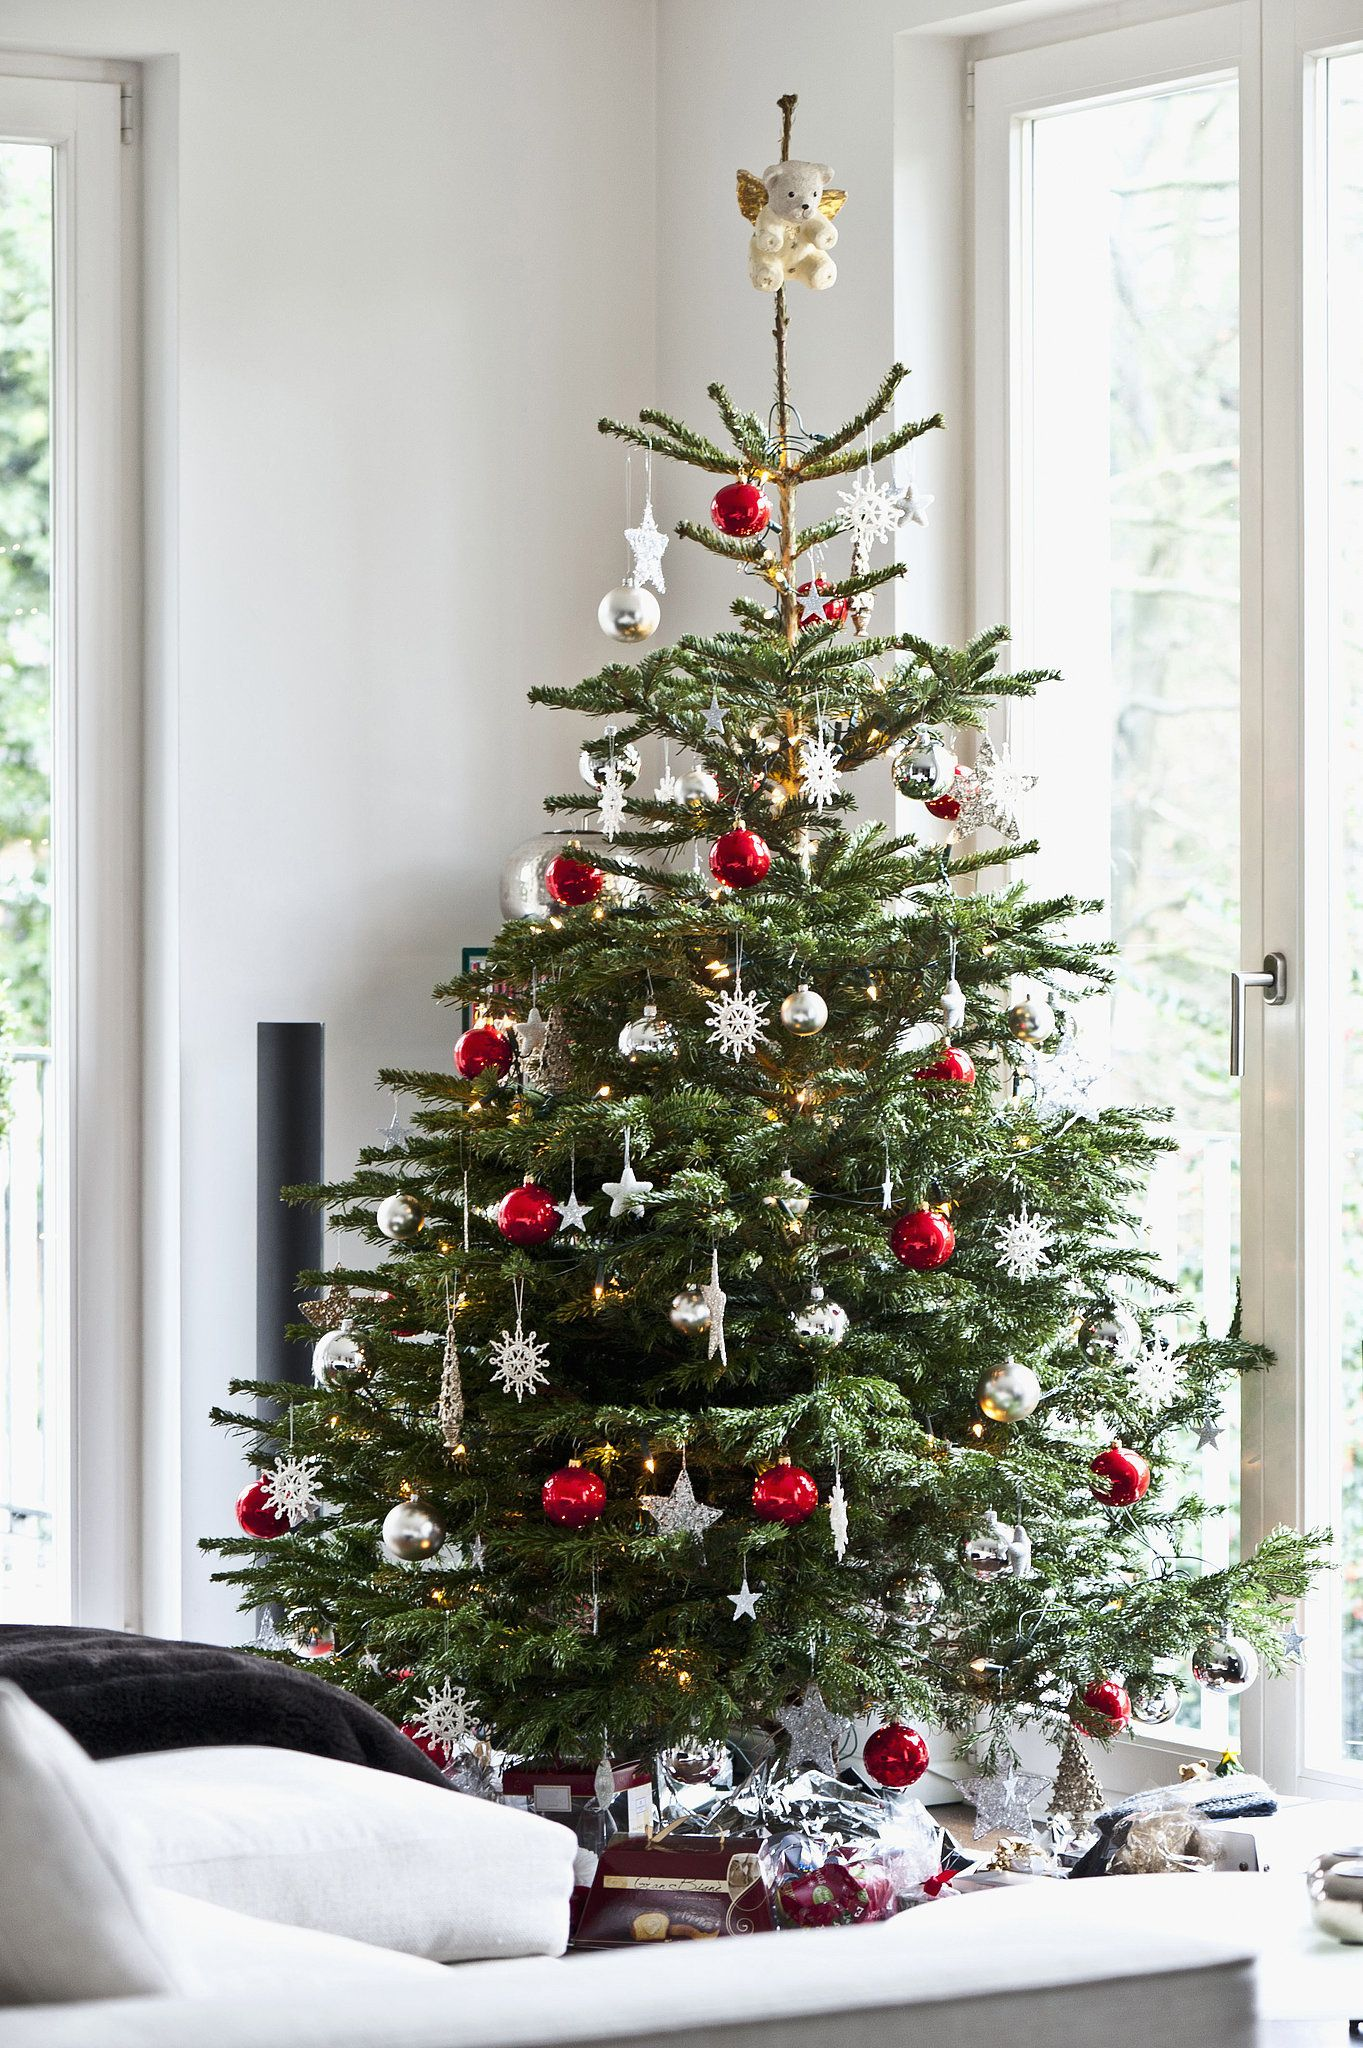 11 tips for decorating your holiday tree like a pro holiday tree real christmas tree - Real Christmas Tree Decorated